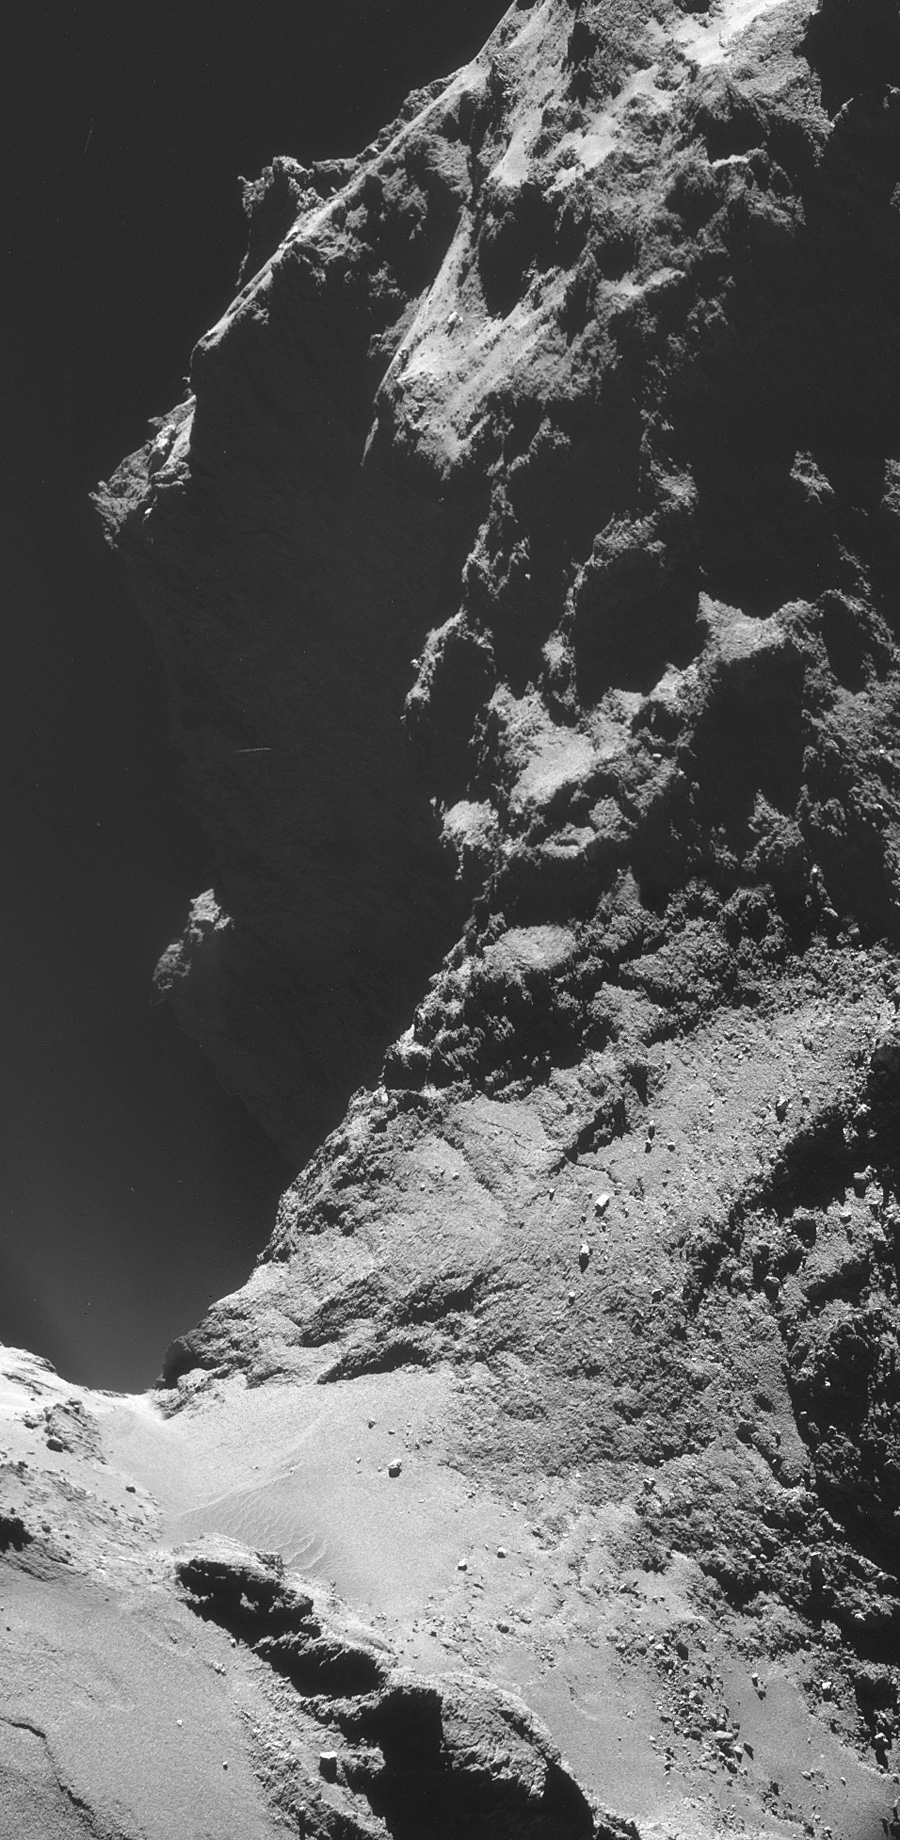 comet-is-8km-away (8)